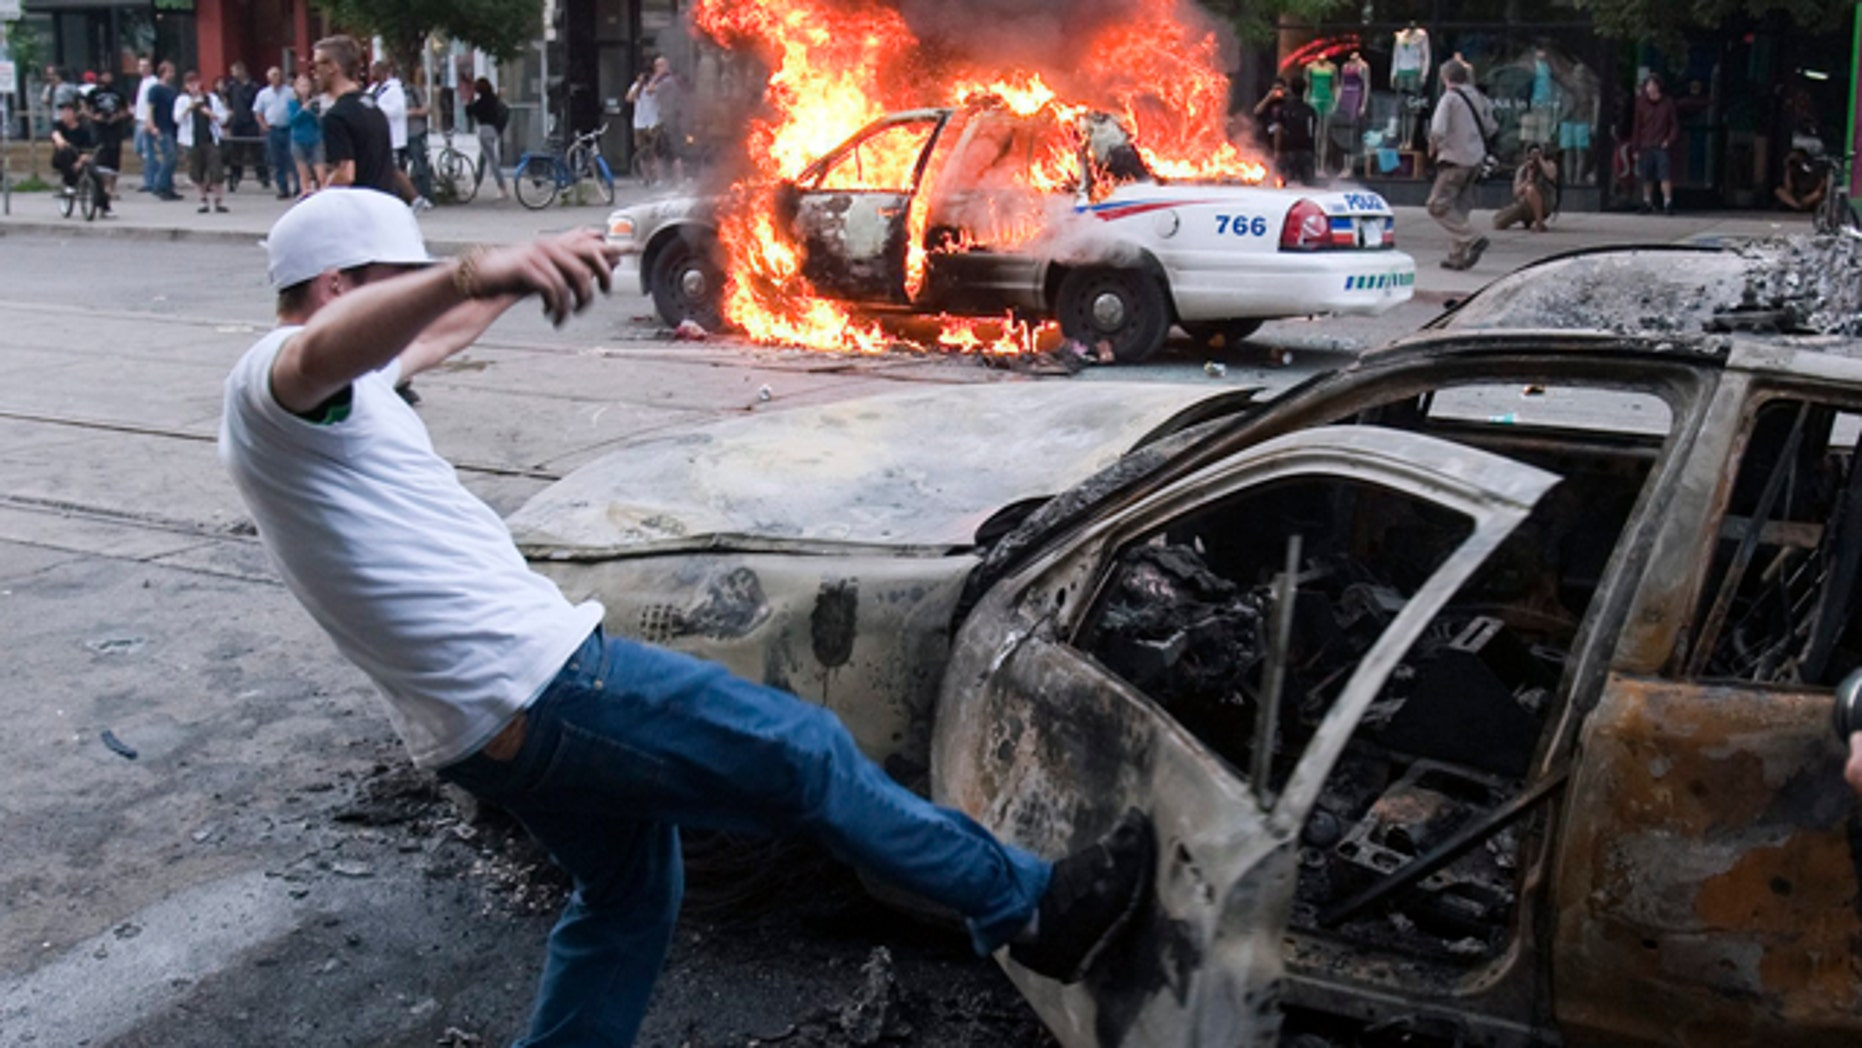 June 26: A protester kicks a burnt-out car as a police vehicle burns in the background during an anti-G-20 demonstration in Toronto. (AP Photo/The Canadian Press, Ryan Remiorz)